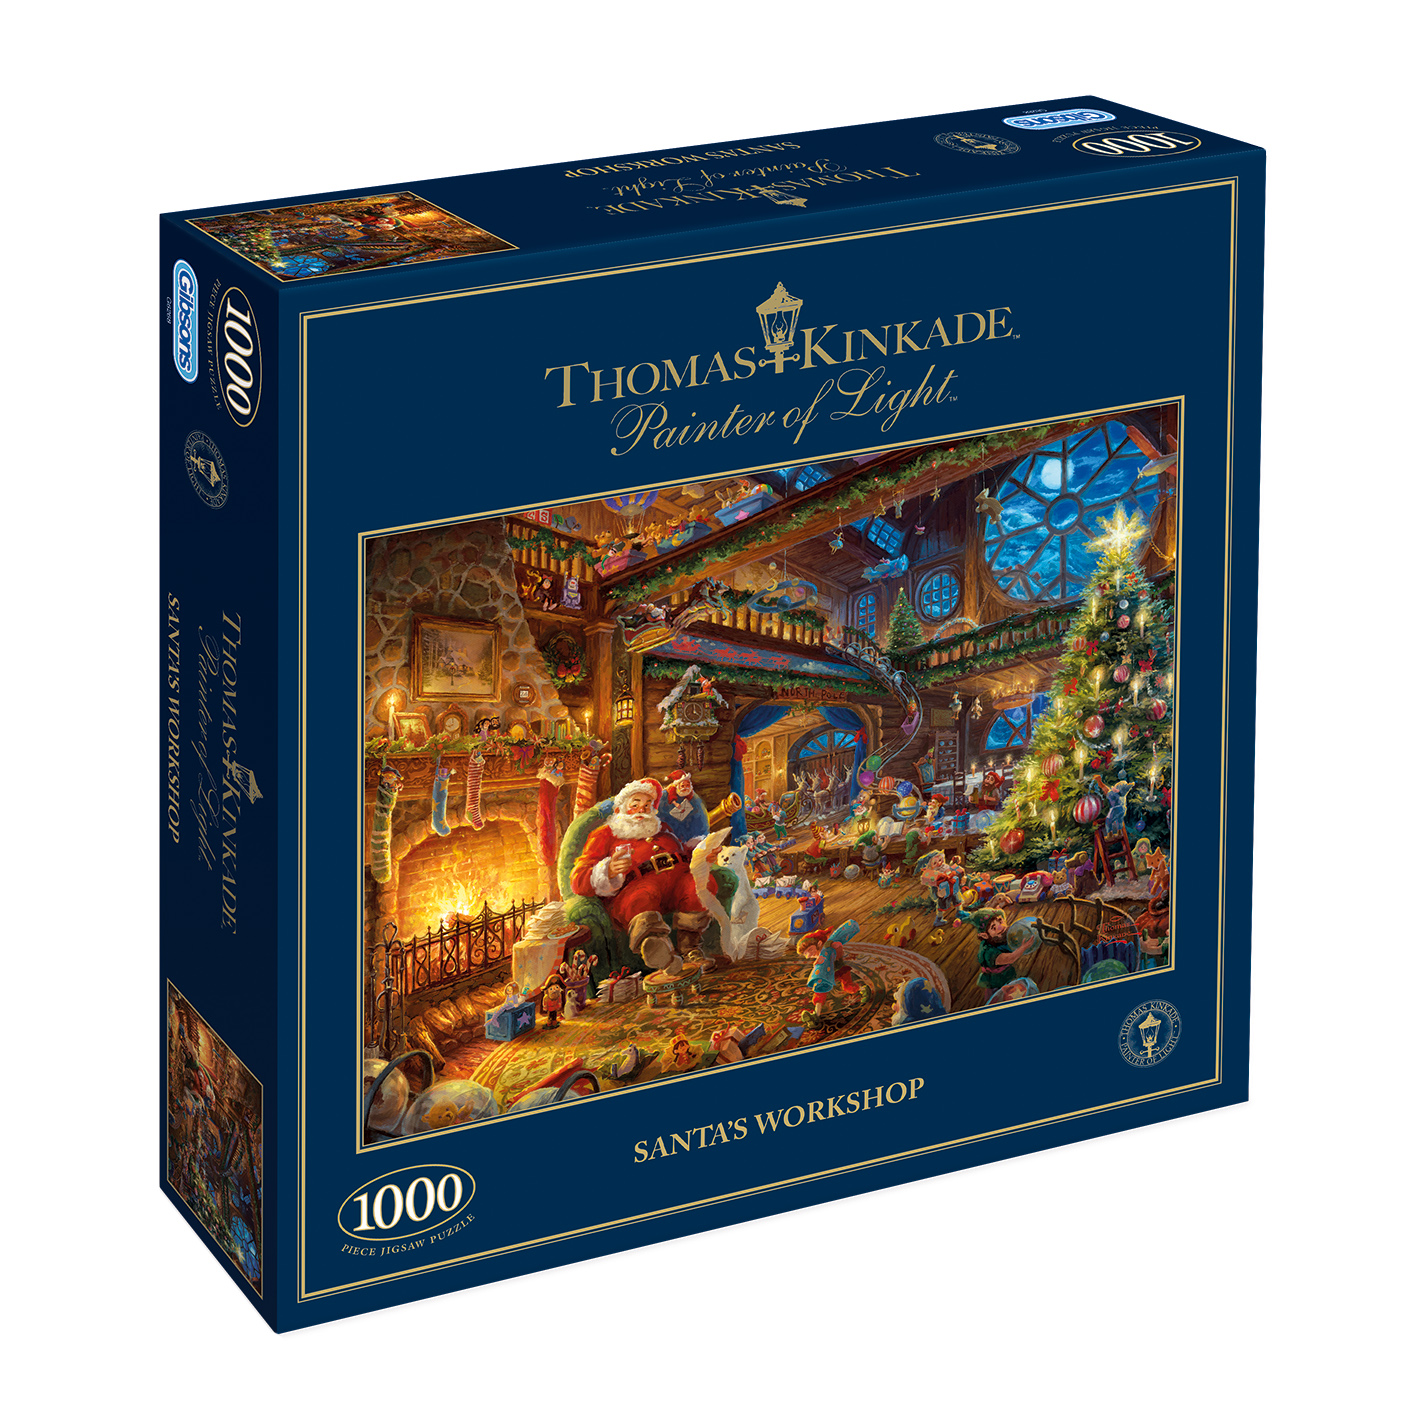 Santa's Workshop 1000pc Jigsaw Puzzle